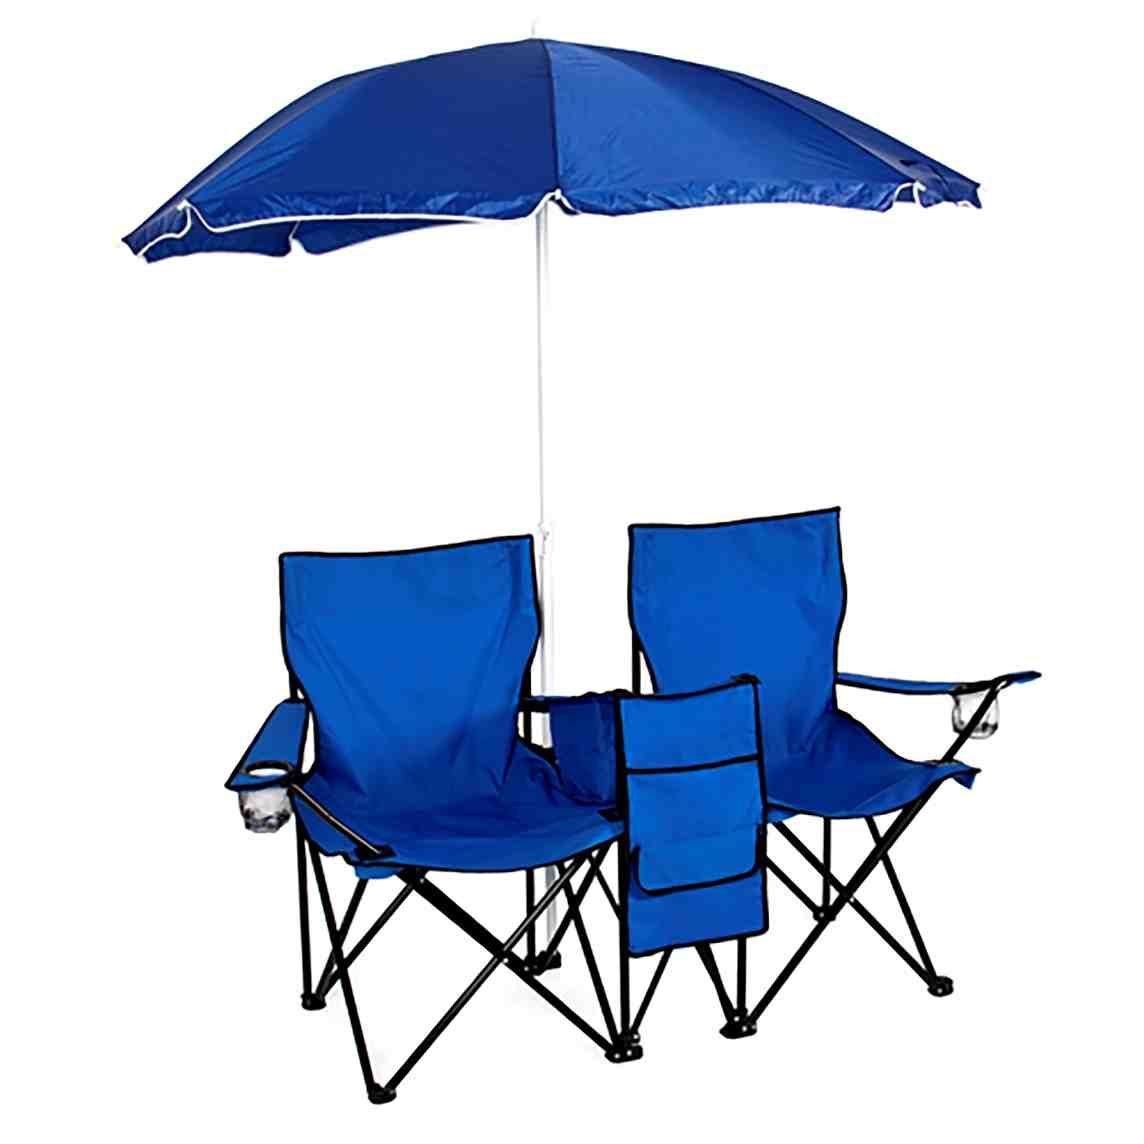 Double Beach Chair With Umbrella Folding Camping Chairs Picnic Chairs Outdoor Chairs